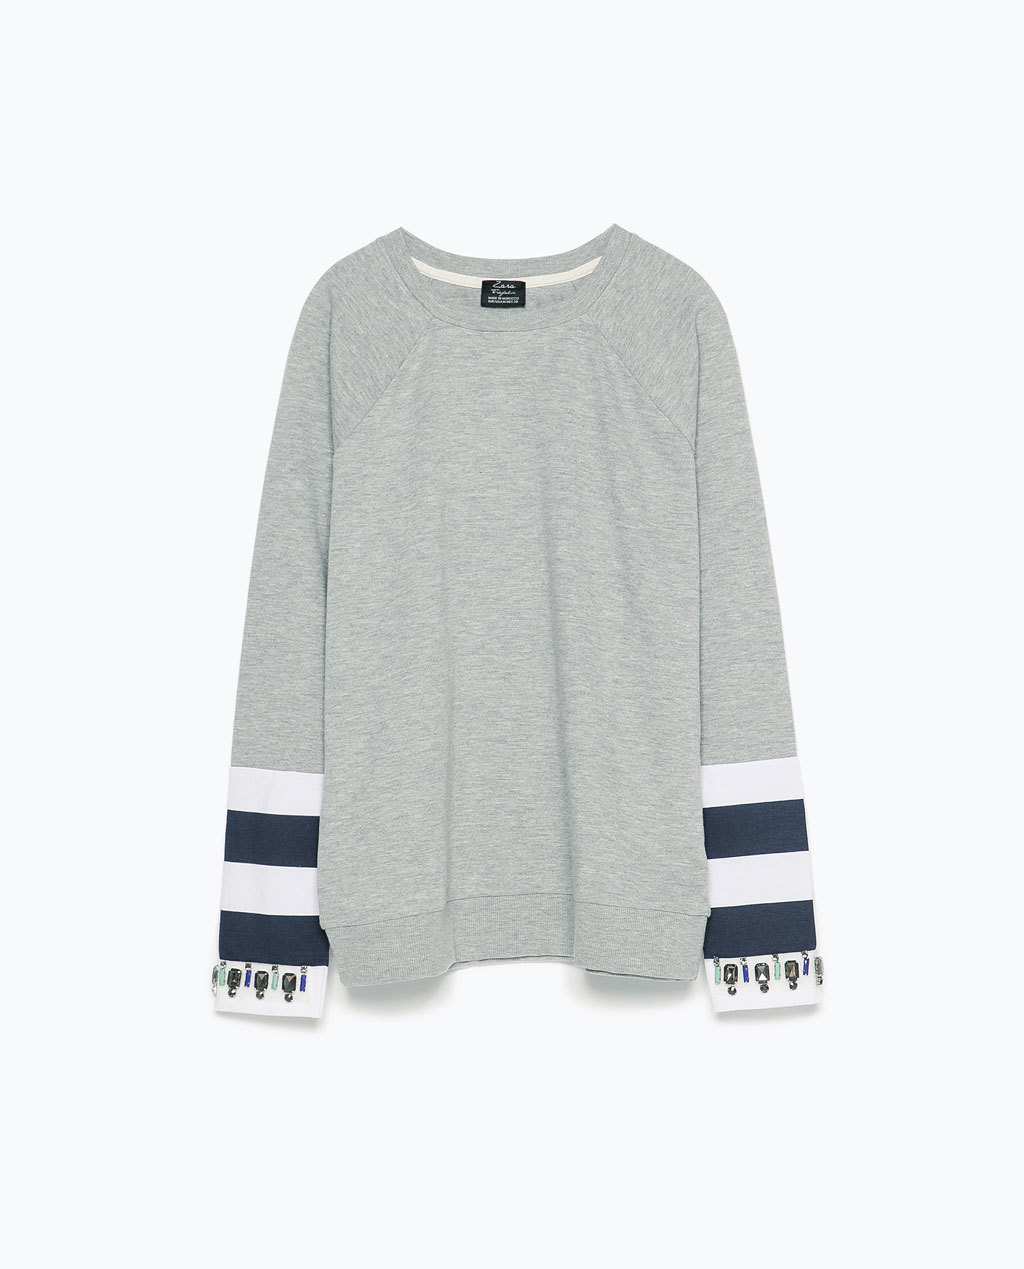 Sweatshirt With Applique Sleeve - pattern: striped; style: sweat top; predominant colour: mid grey; secondary colour: black; occasions: casual; length: standard; fibres: cotton - mix; fit: loose; neckline: crew; sleeve length: long sleeve; sleeve style: standard; pattern type: fabric; texture group: jersey - stretchy/drapey; season: s/s 2015